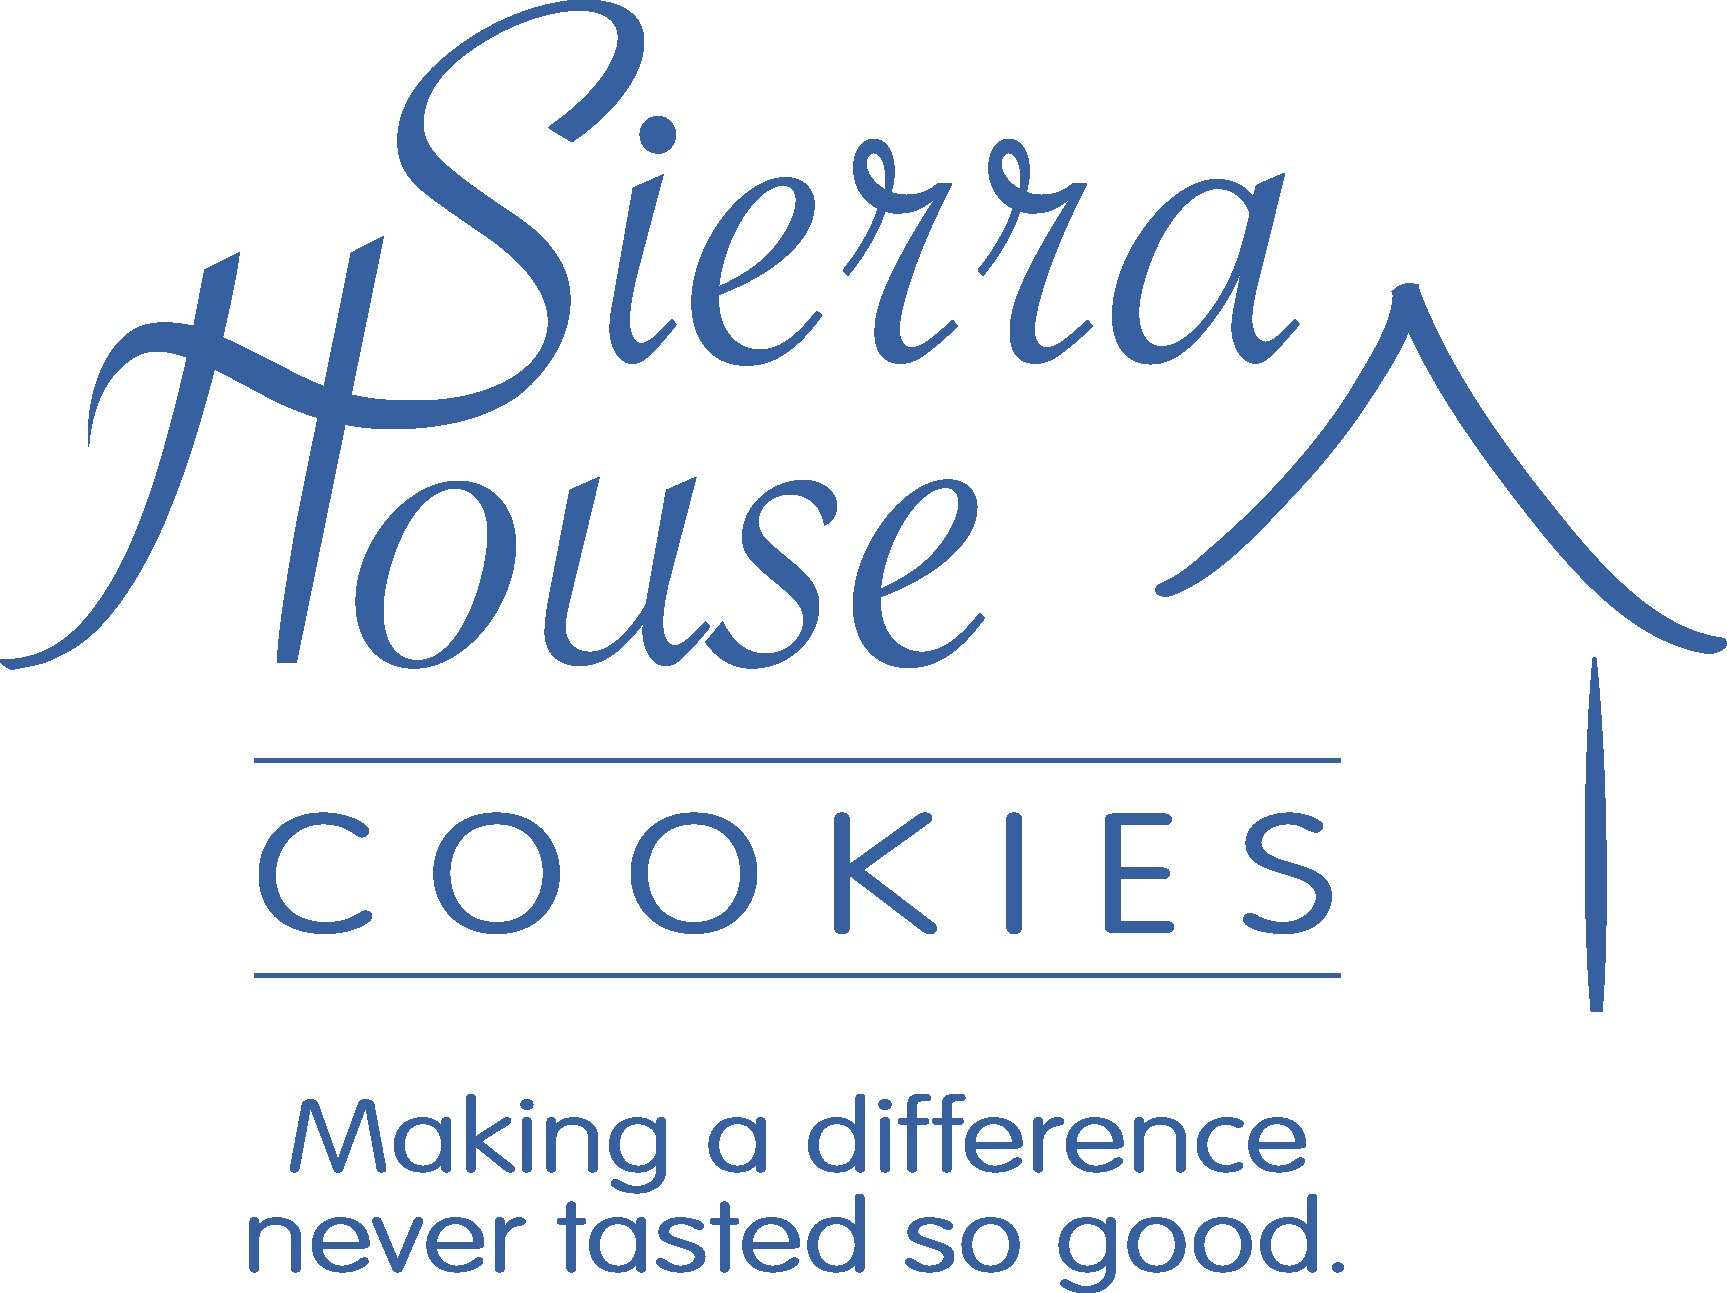 4fb51119b7461957331f_Sierra_House_Cookies_Logo_Final.png